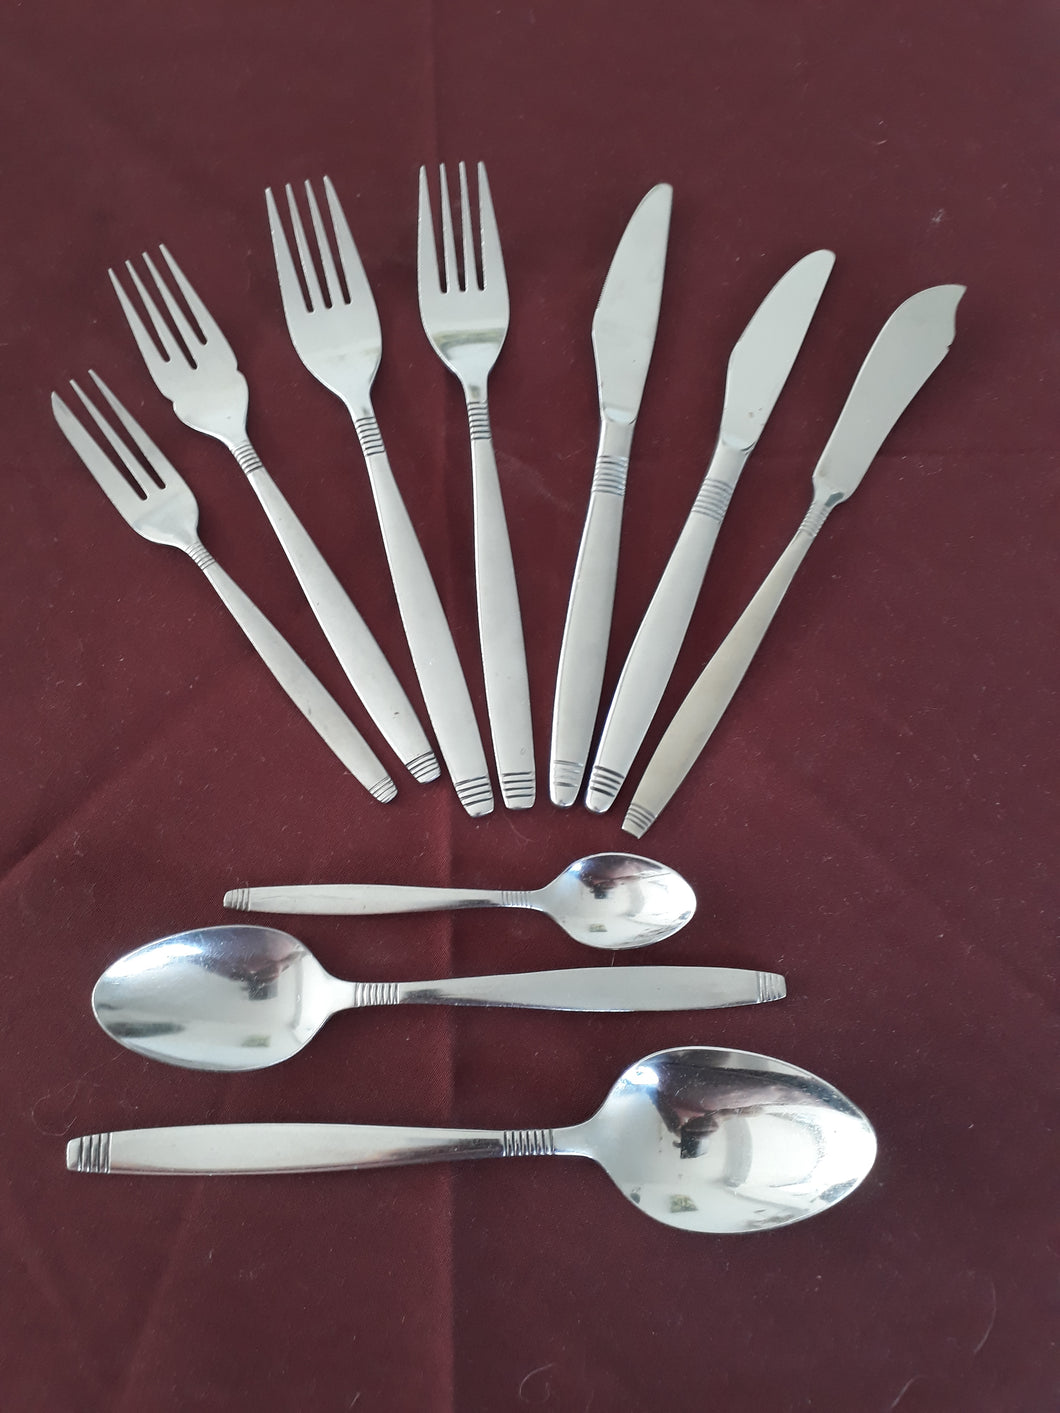 Dinner Fork from the Style cutlery collection